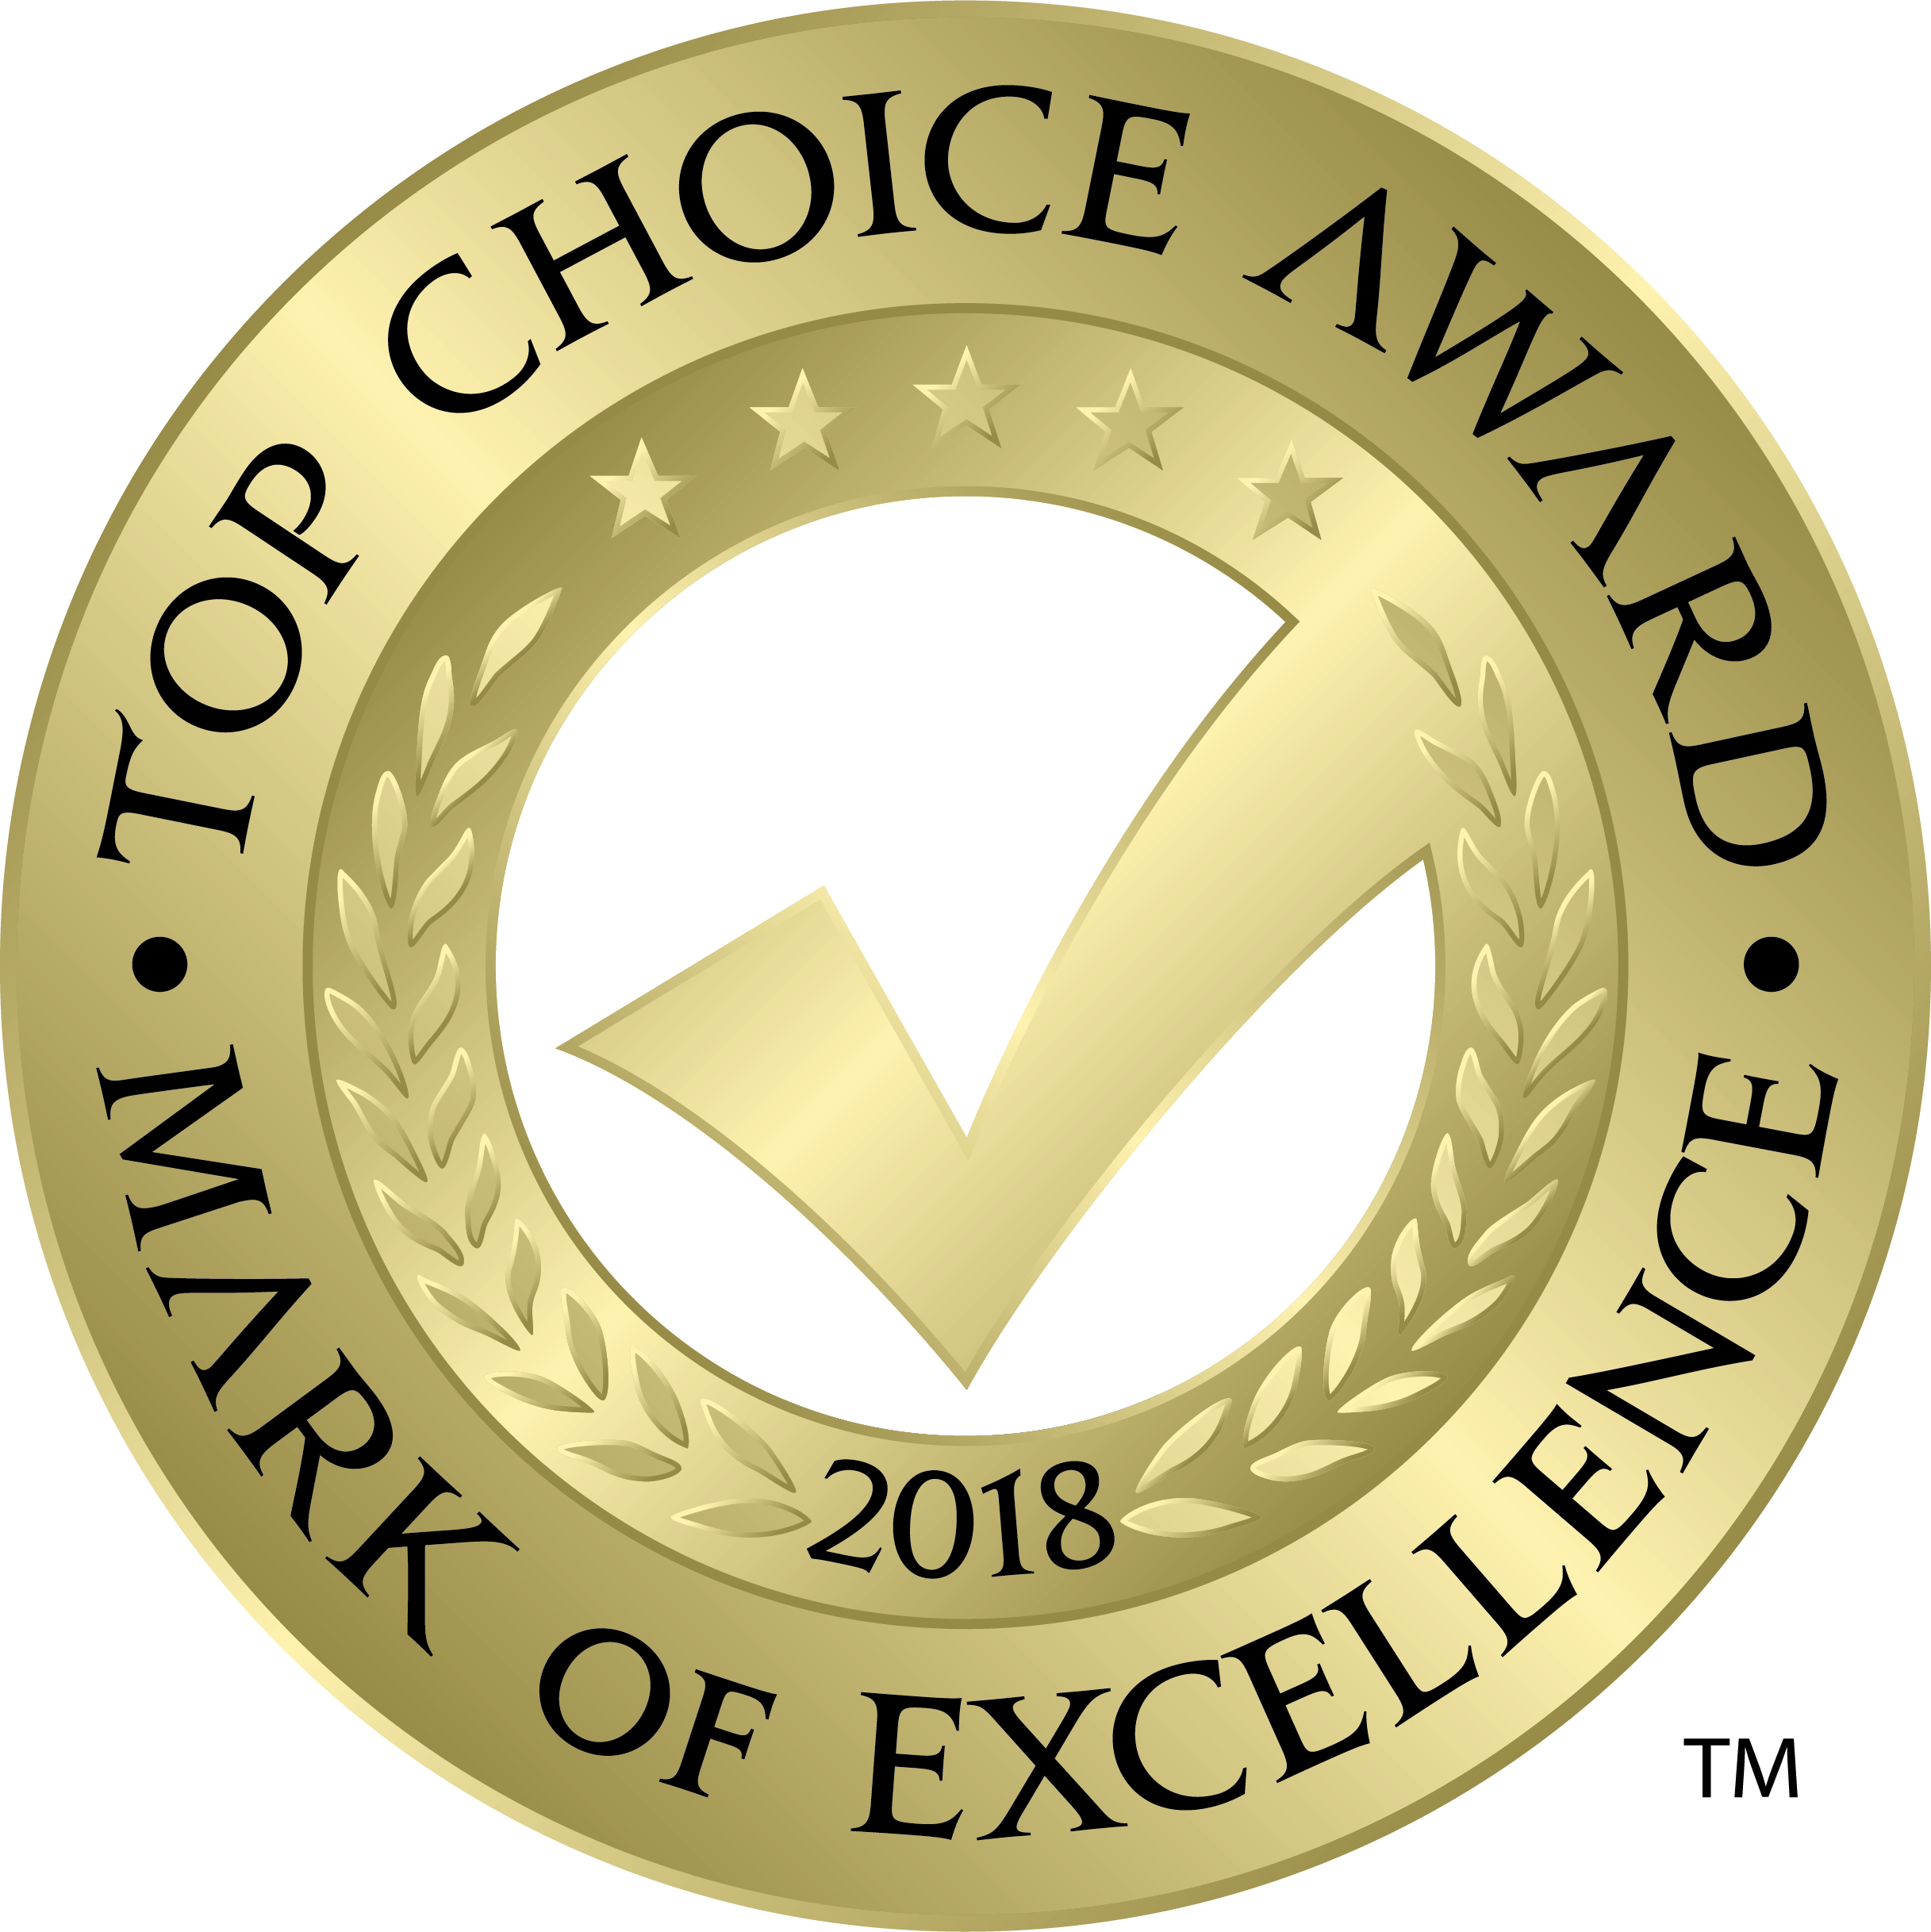 TopChoiceAwards_logo_year_2018_Colour.jpg